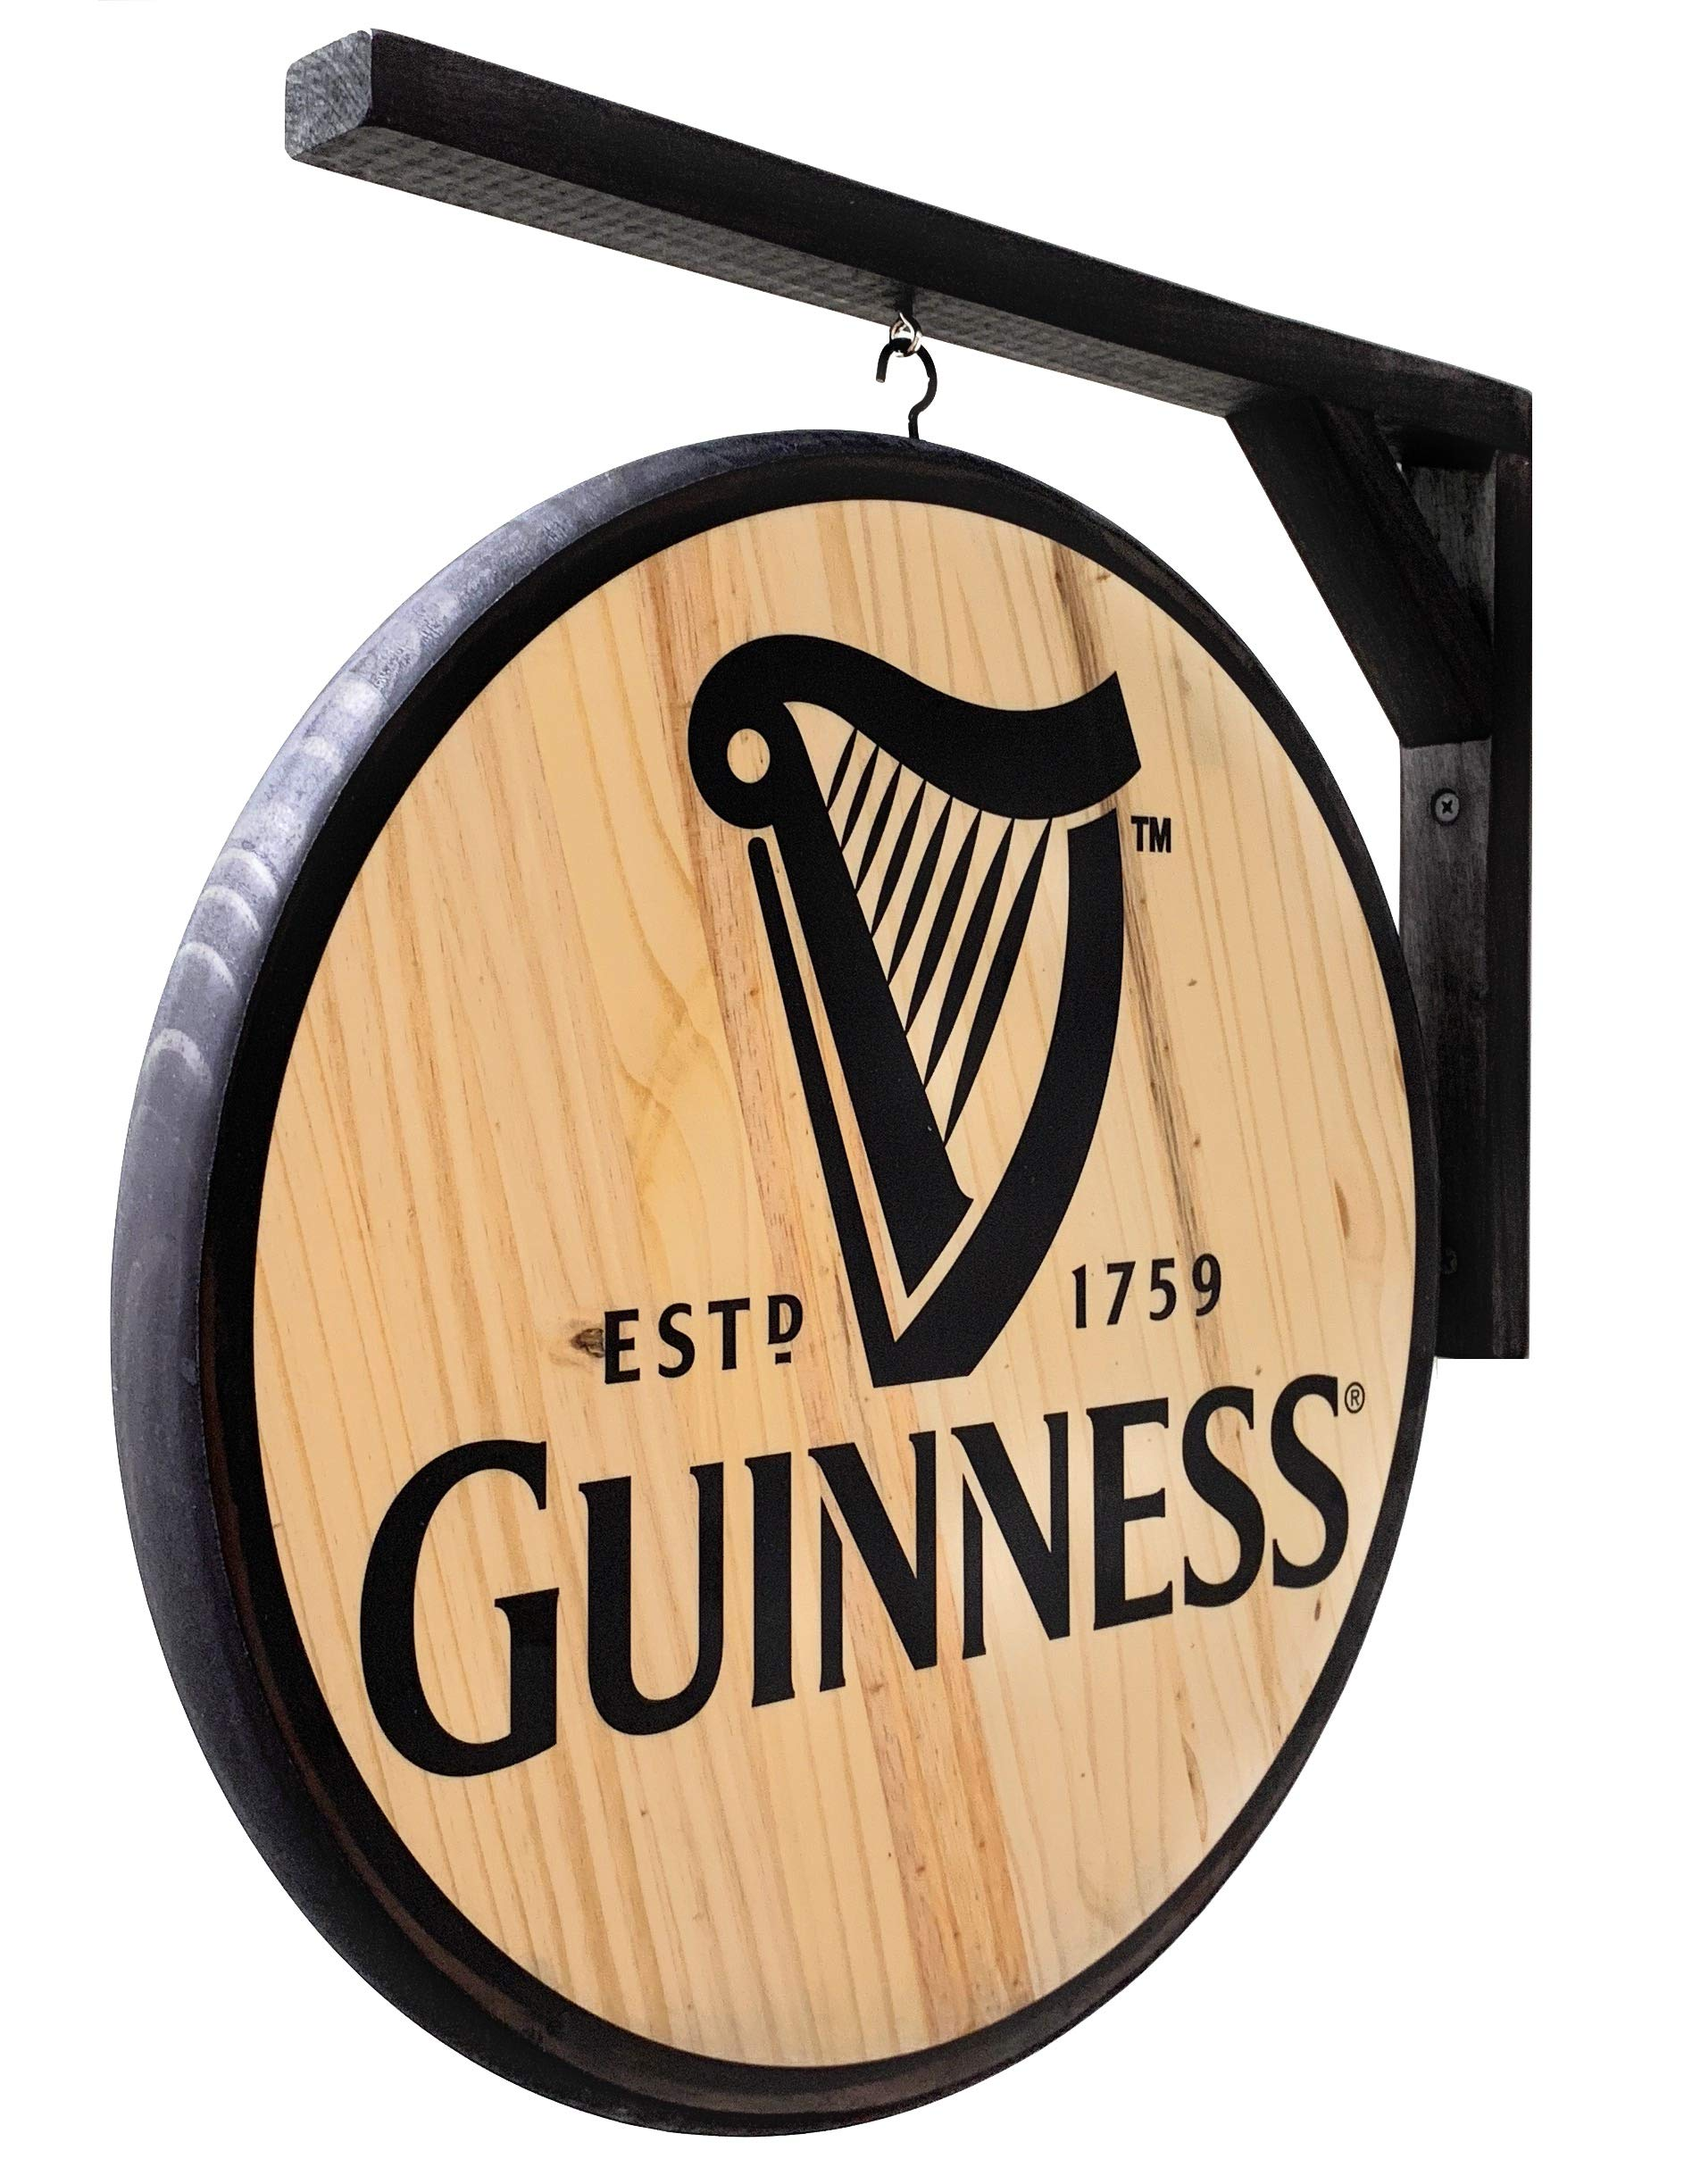 Guinness Sign - Classic 15 inch Dia, Double-Sided Pub Sign - Includes Wood Hanging Bracket by Guinness Stout